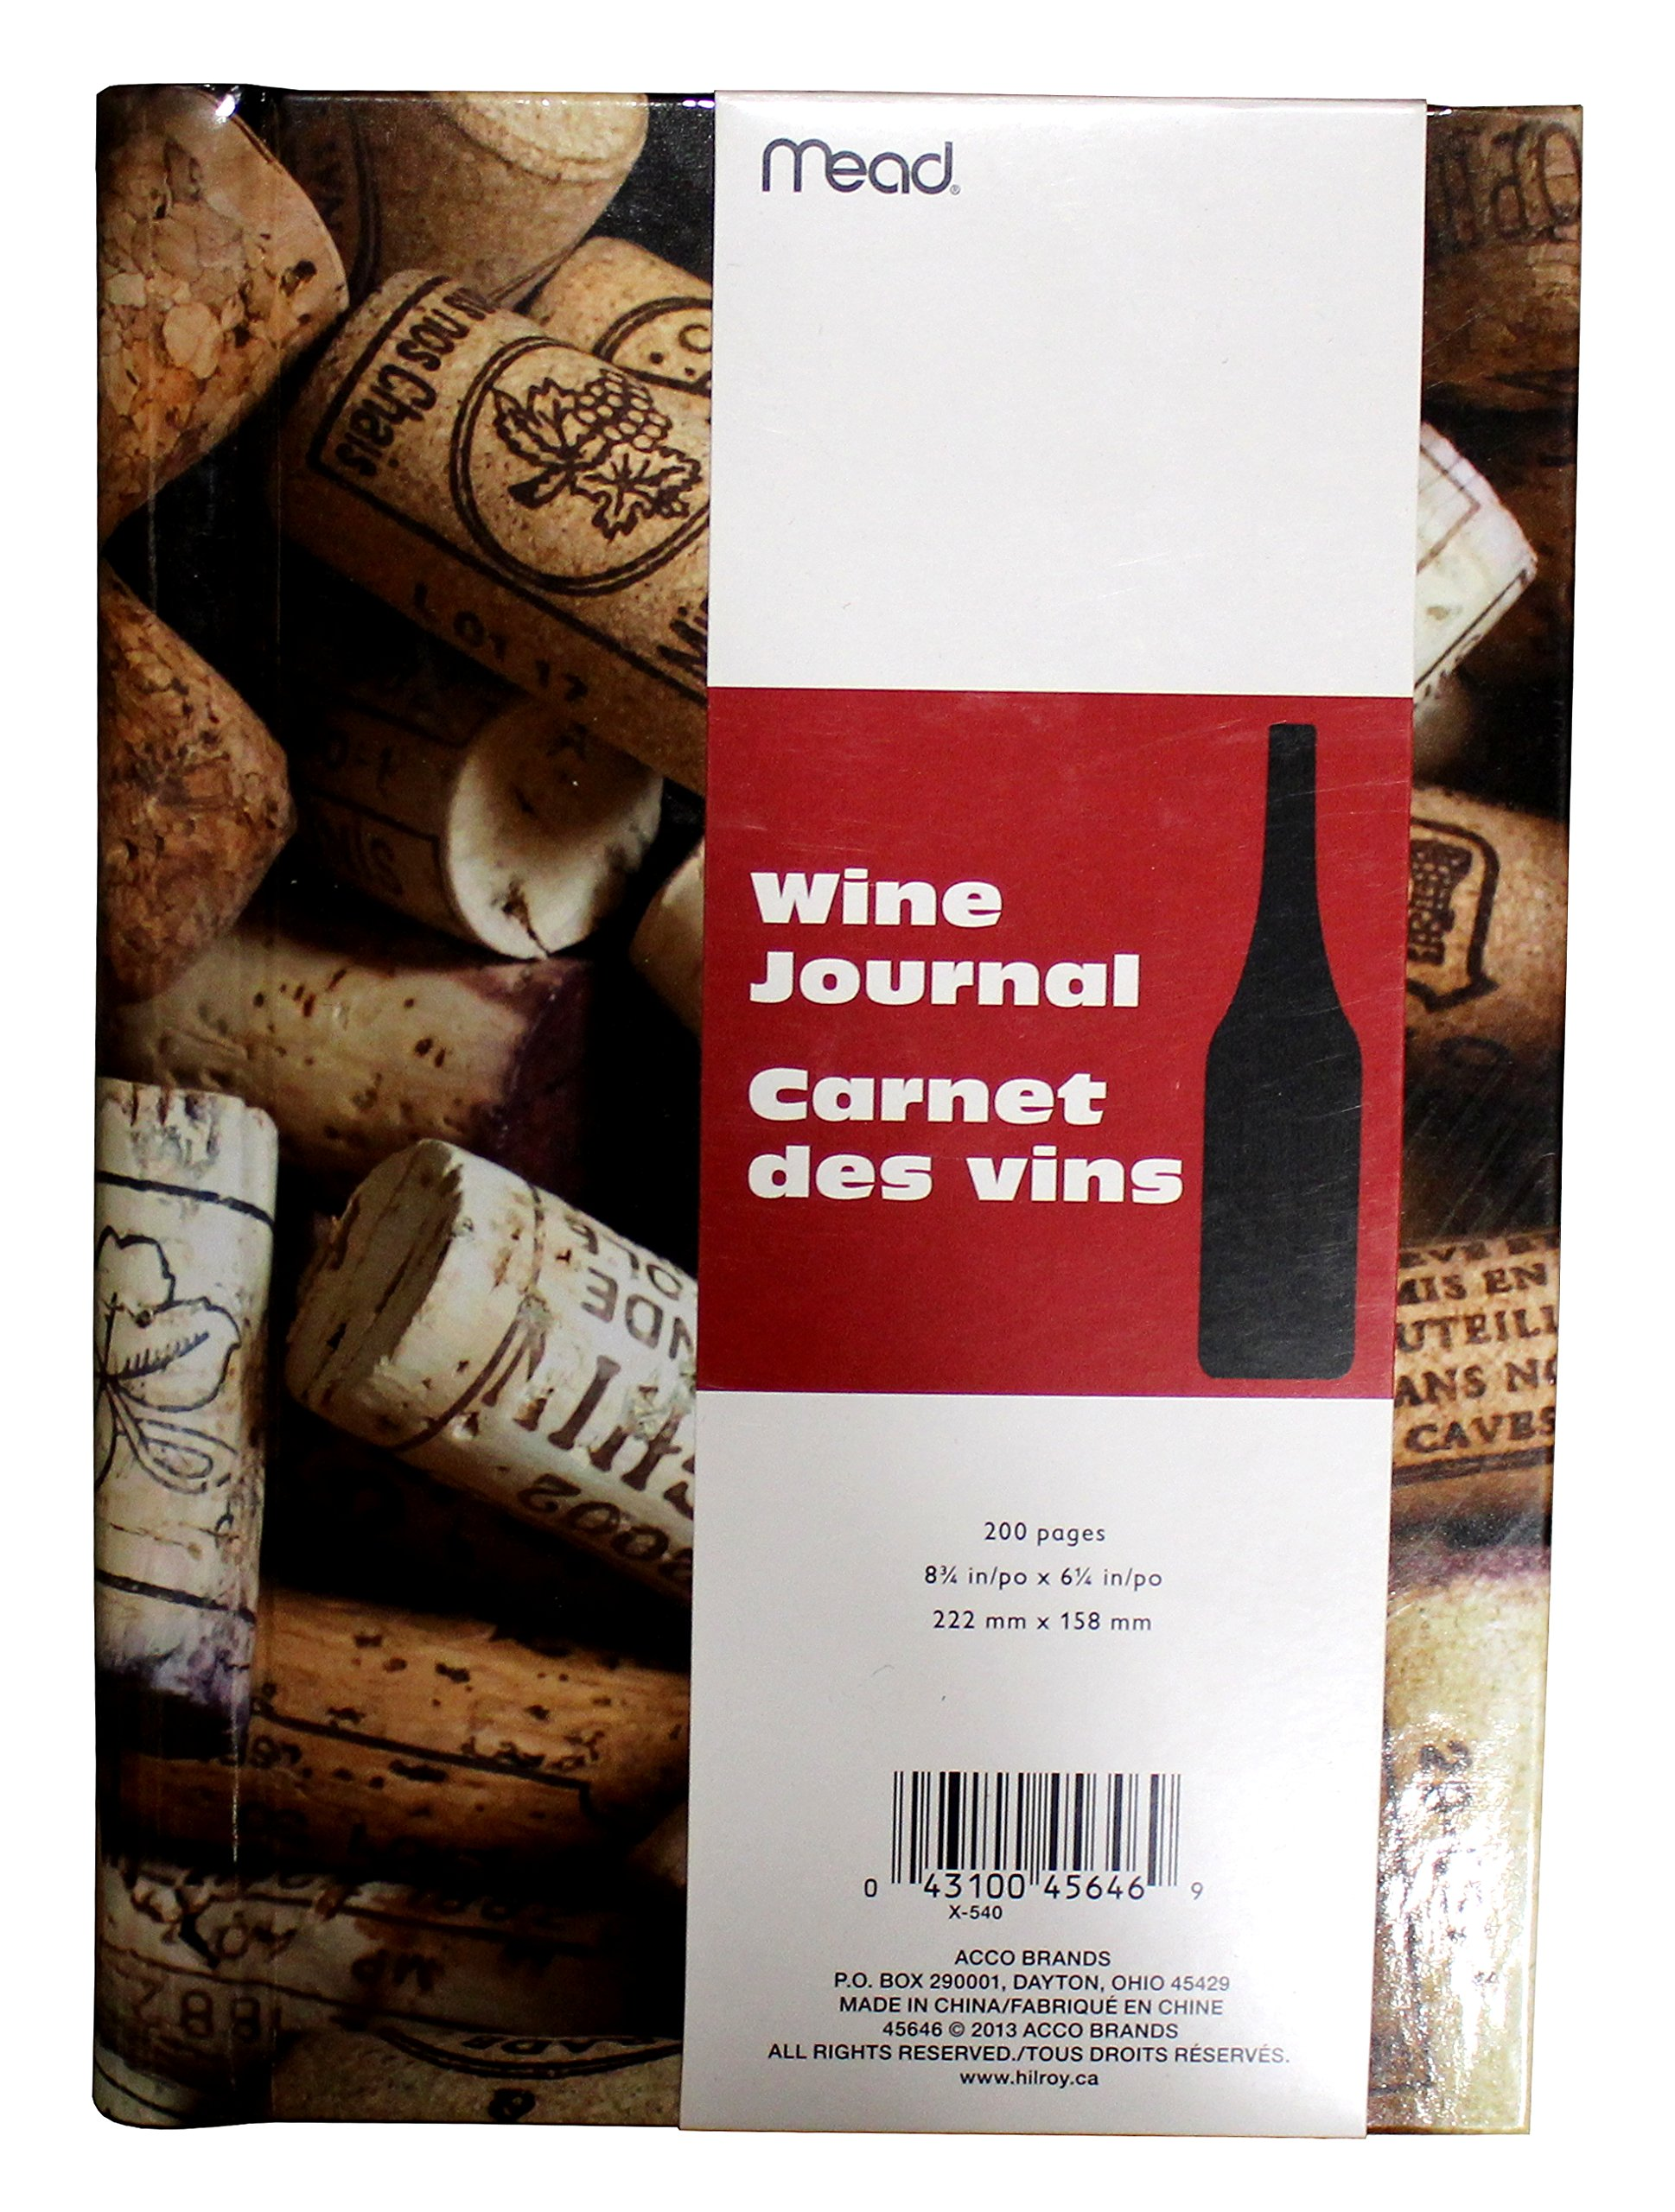 Mead Wine Journal, Dimensions 8 ¾ in x 6 ¼ in (222 mm x 158 mm), 200 pages by ACCO Brands (Image #2)